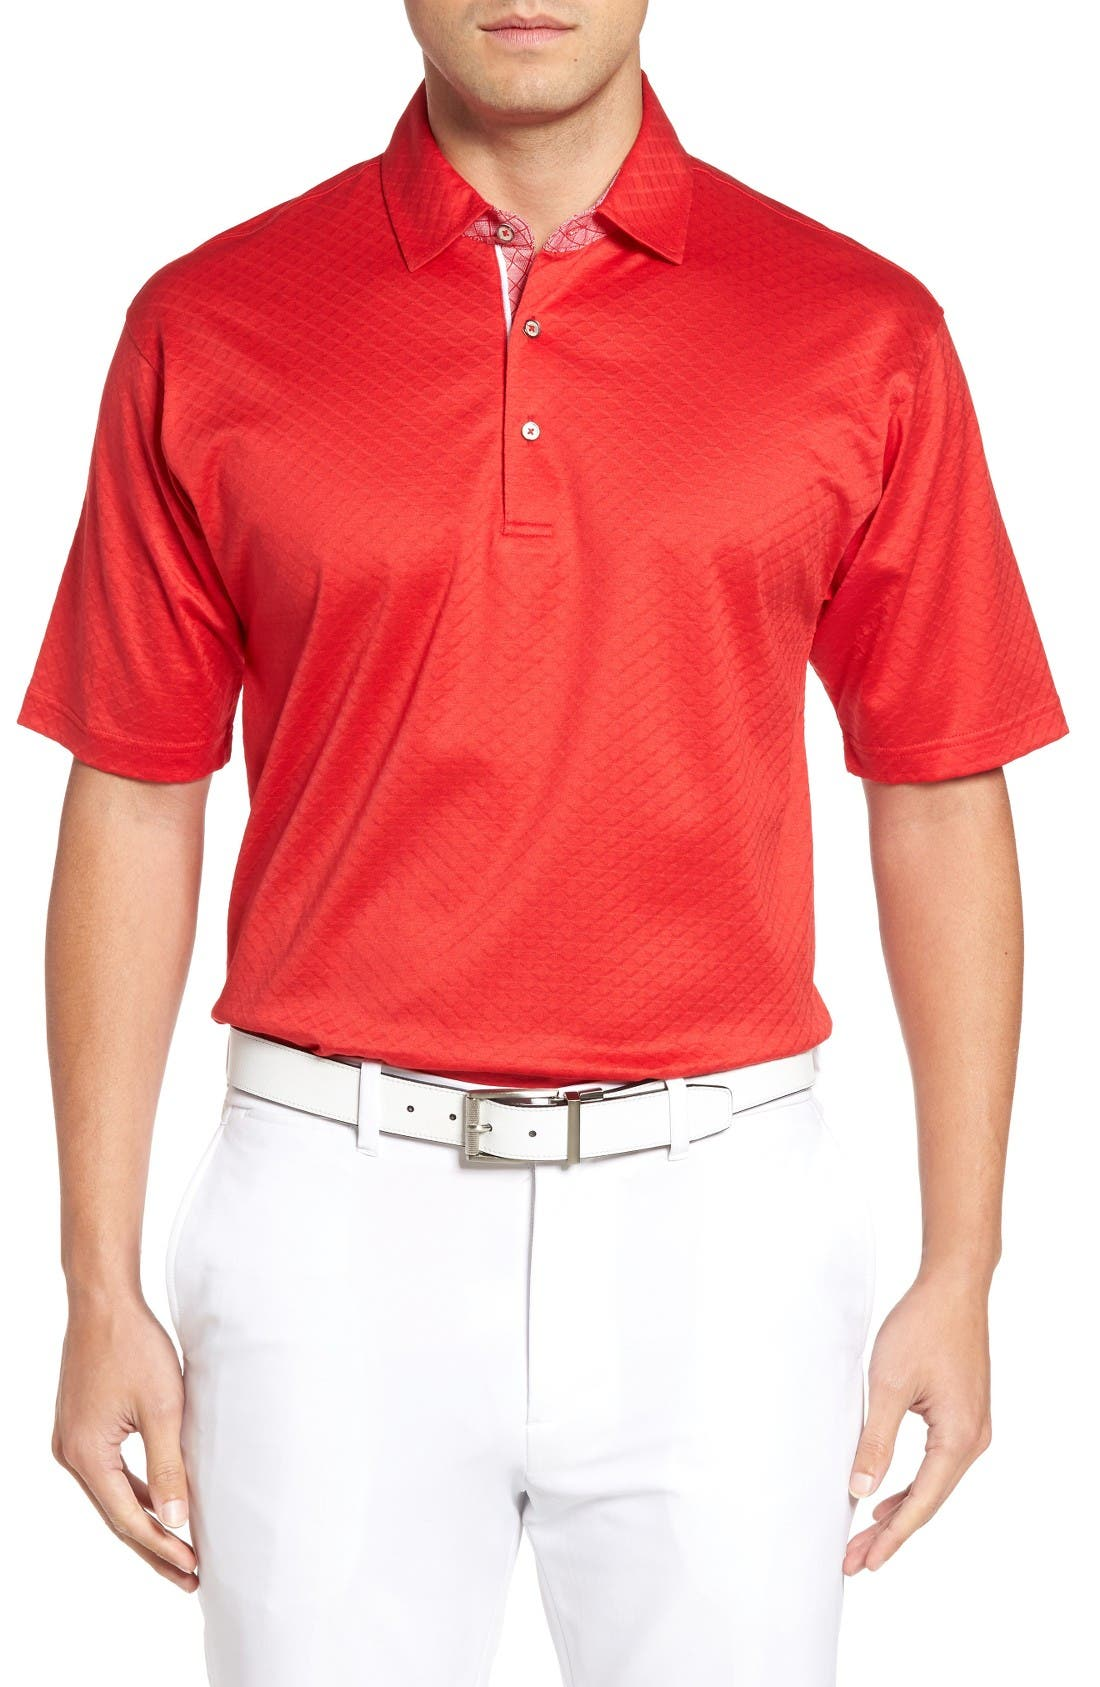 Bobby Jones Diamond Jacquard Golf Polo